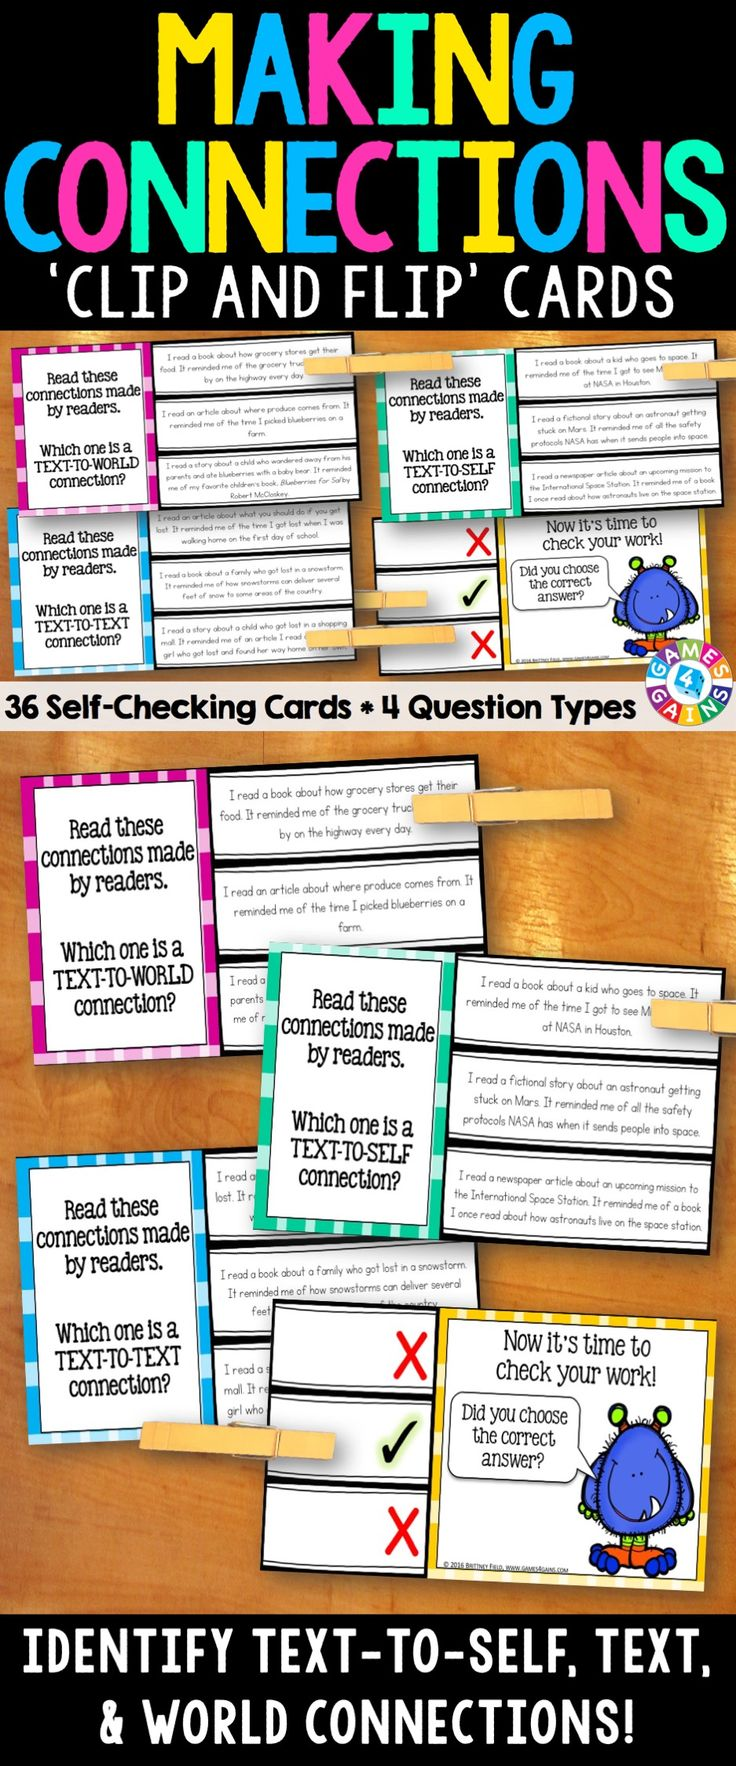 Making Connections 'Clip and Flip' Cards contains 36 self-correcting cards to help students practice making text-to-self, text-to-text, and text-to-world connections. There are 4 different types of making connections questions covered by these cards.